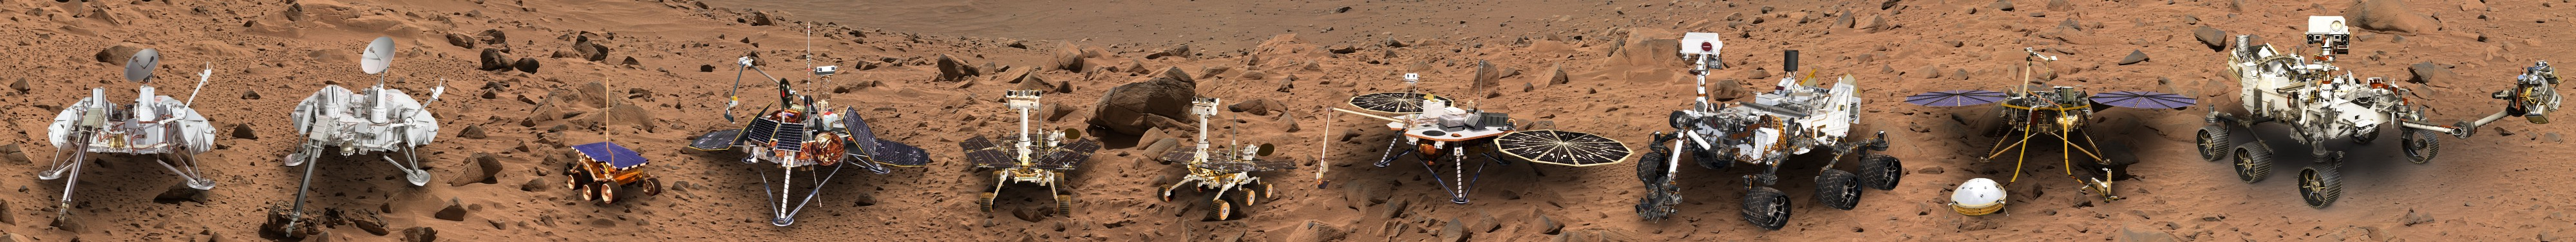 All Mars Rovers and Landers From NASA